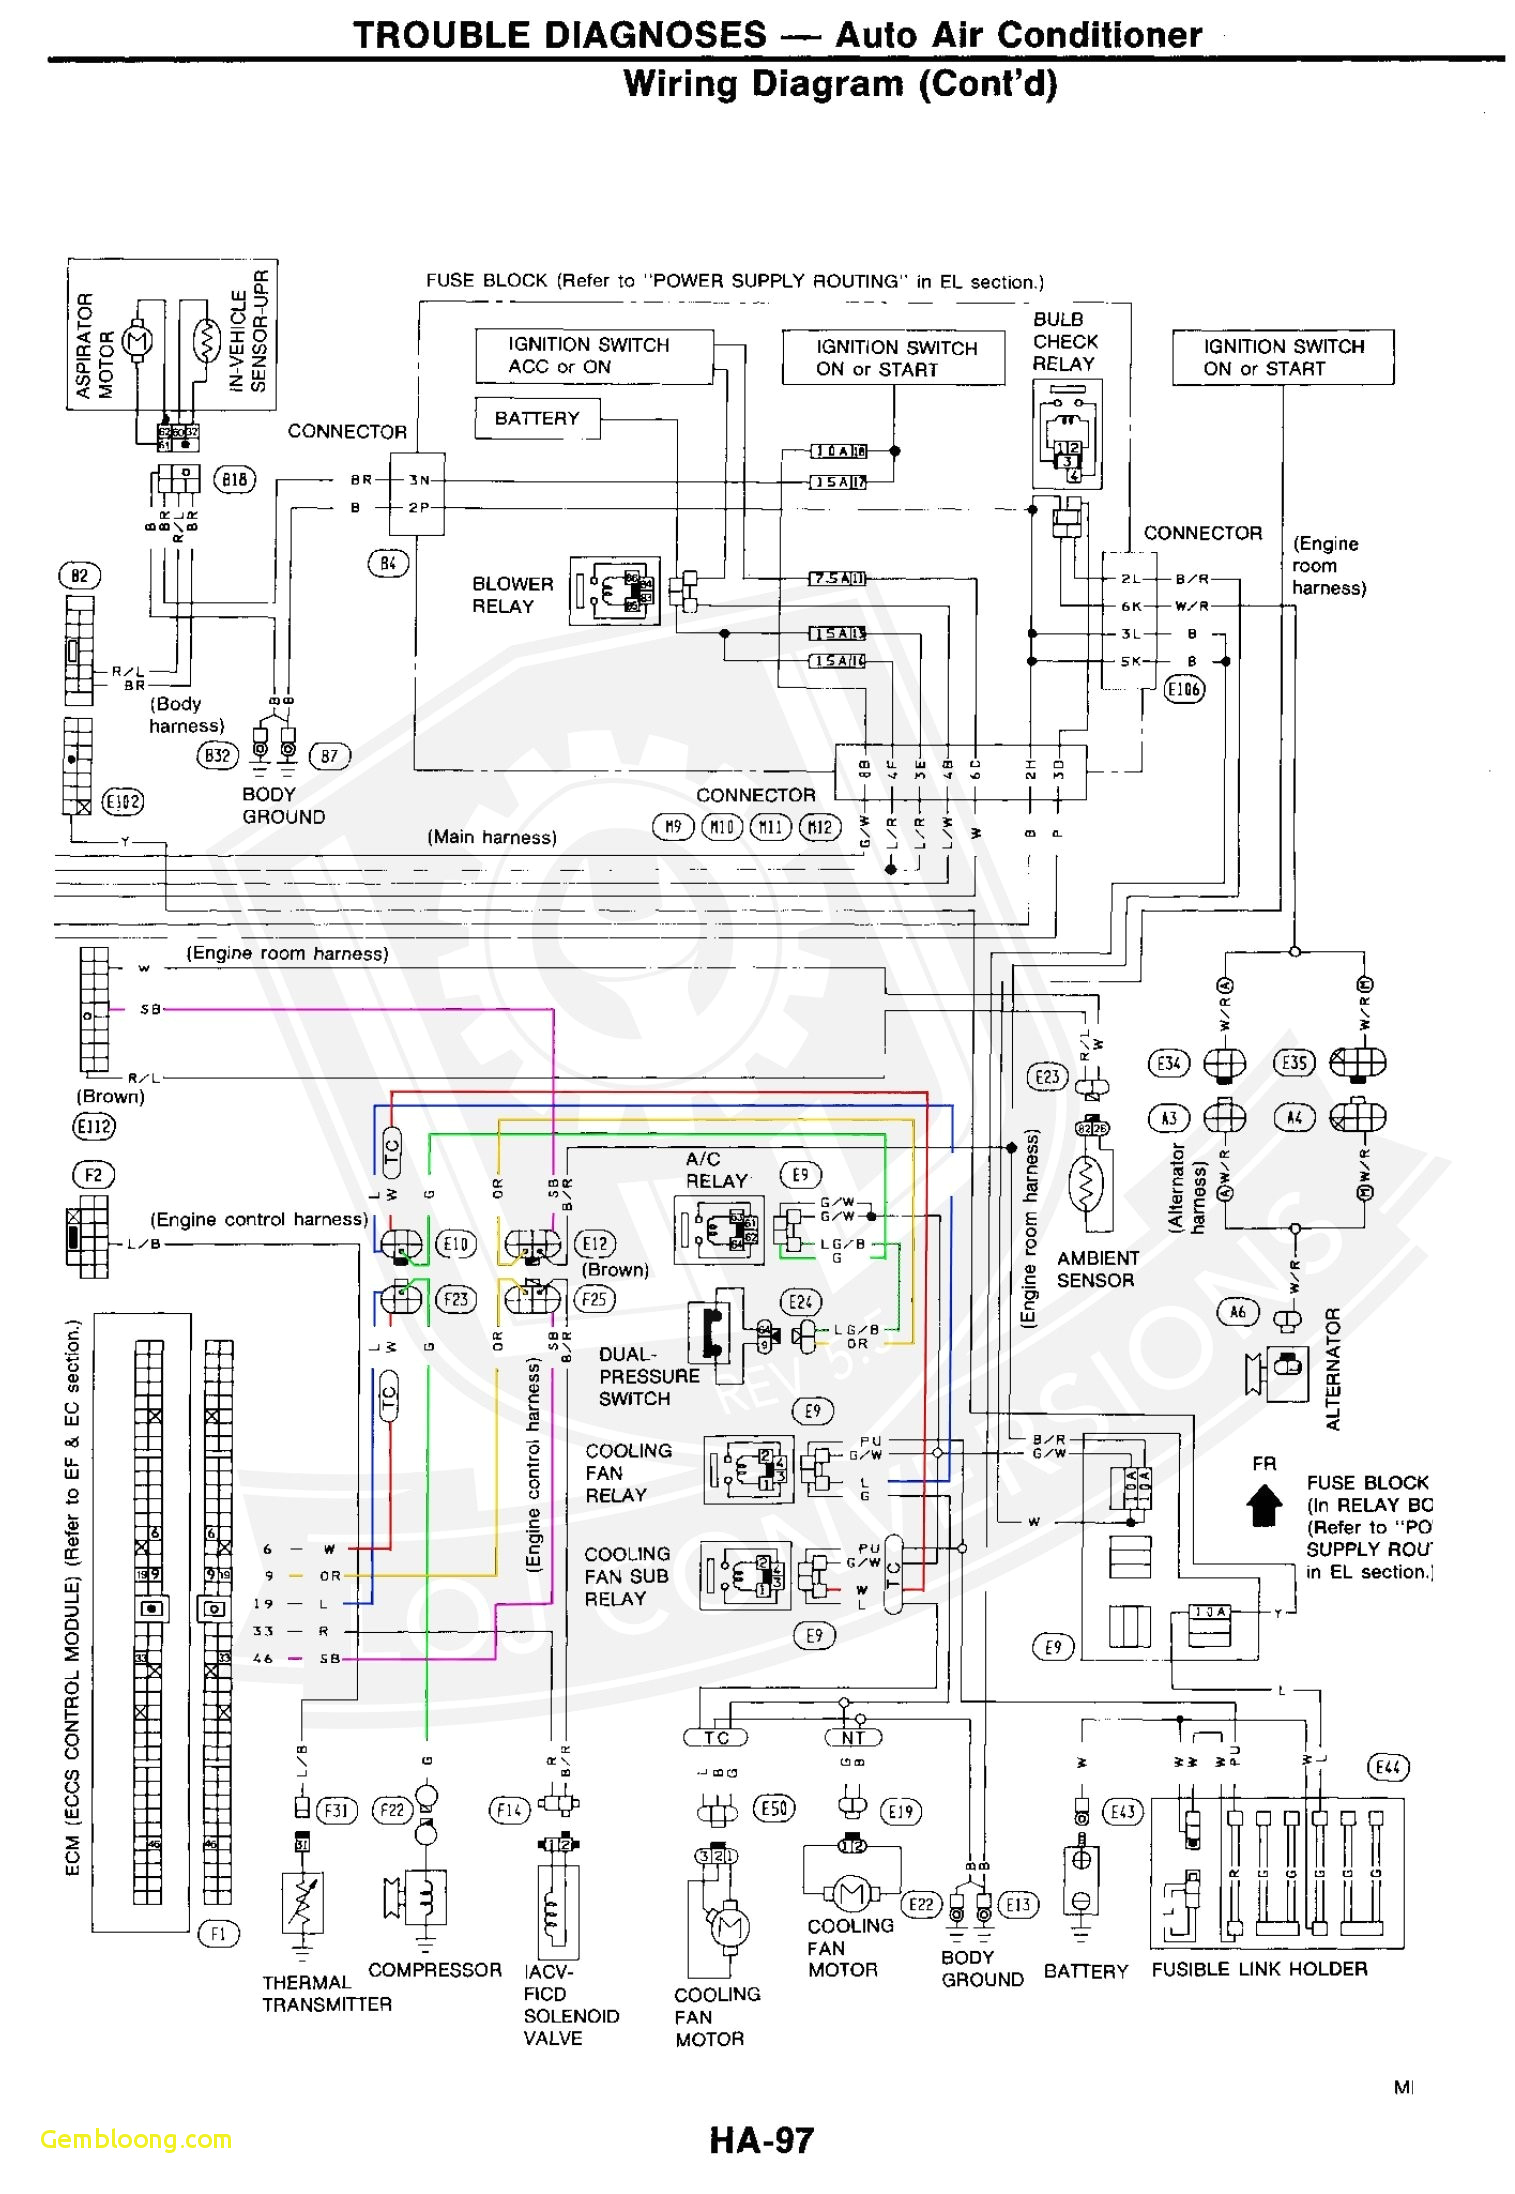 98 e36 wiring diagram diagram data schema 98 e36 wiring diagram wiring diagram dat 98 e36